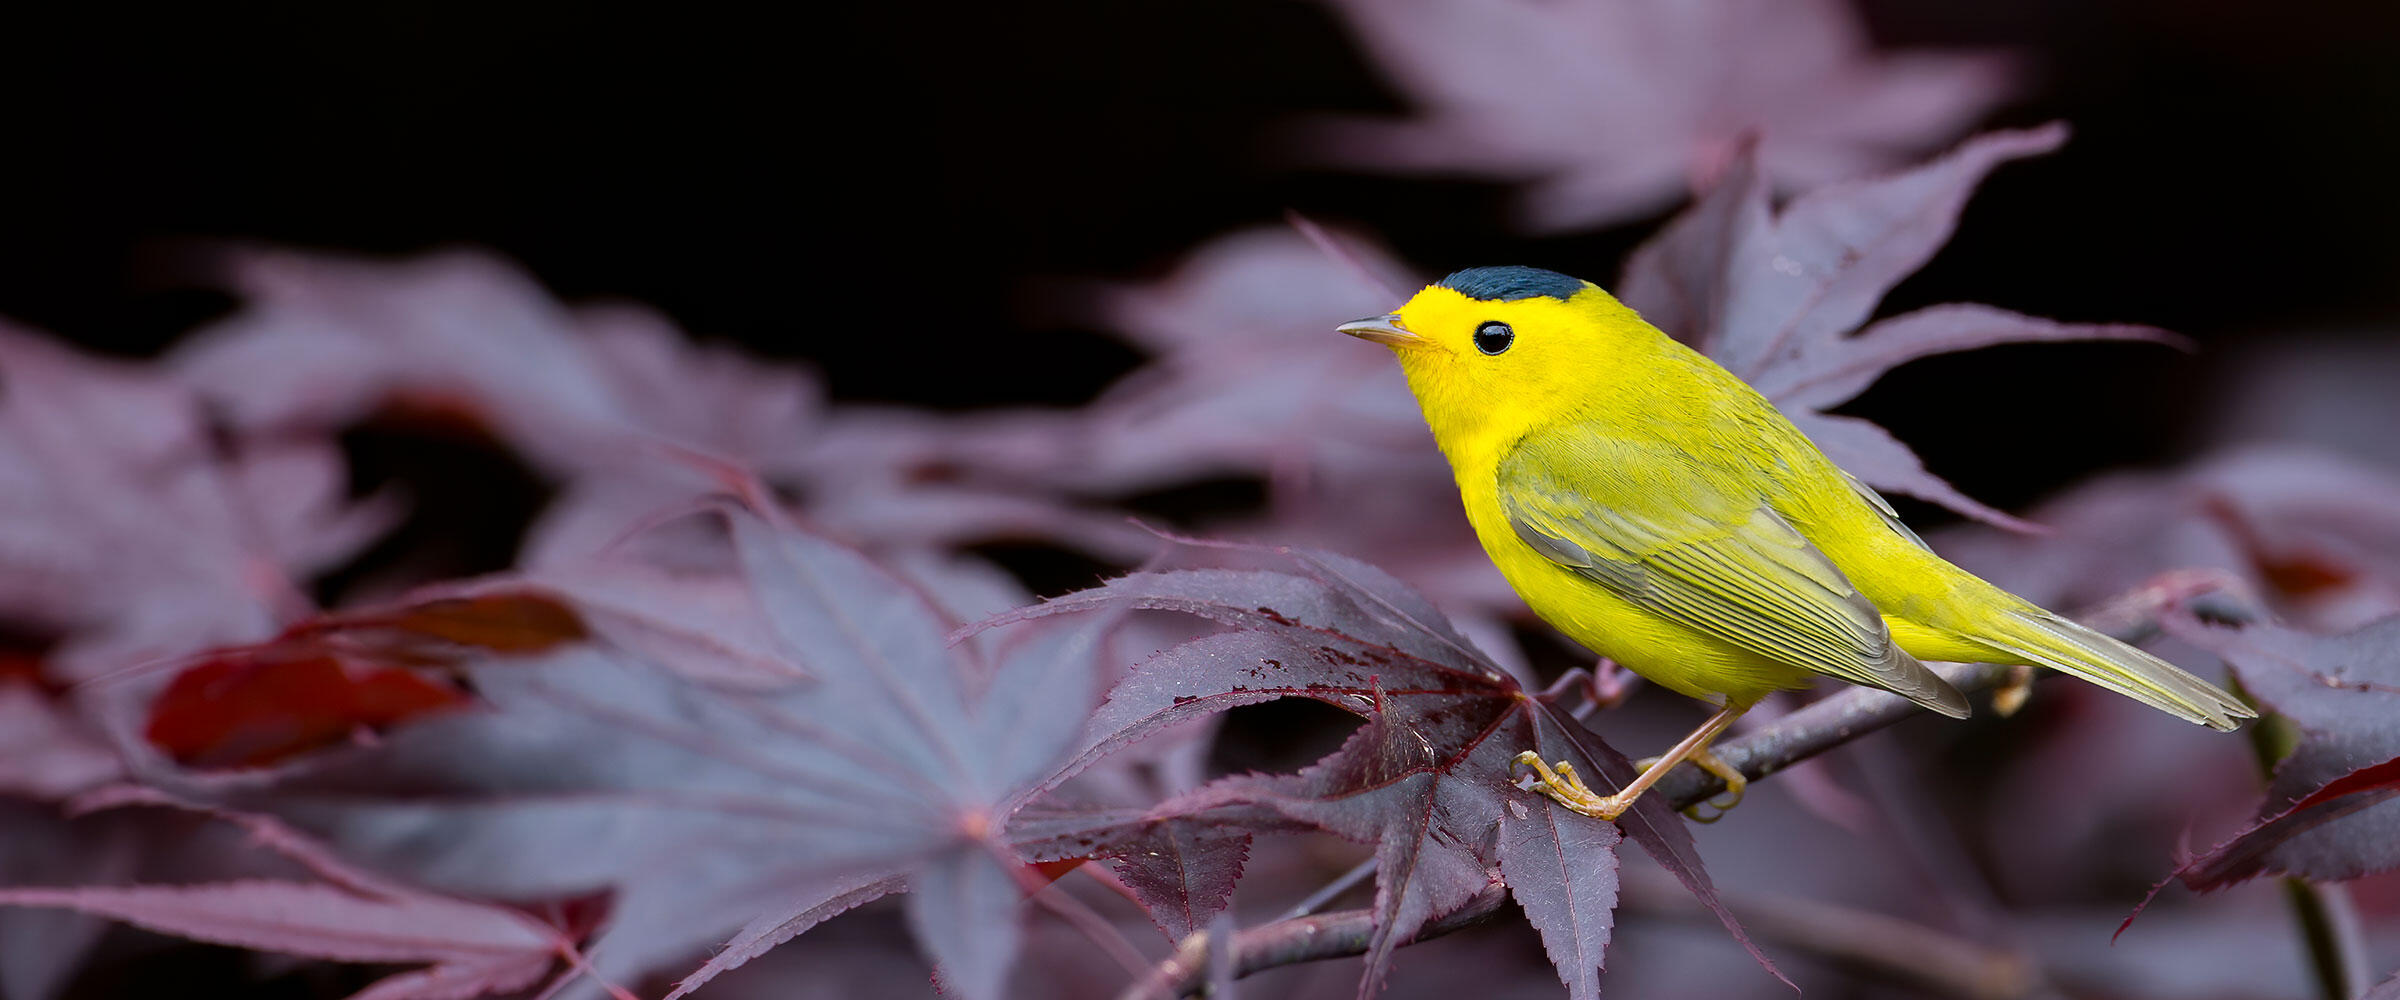 Wilson's Warbler perched on branch.